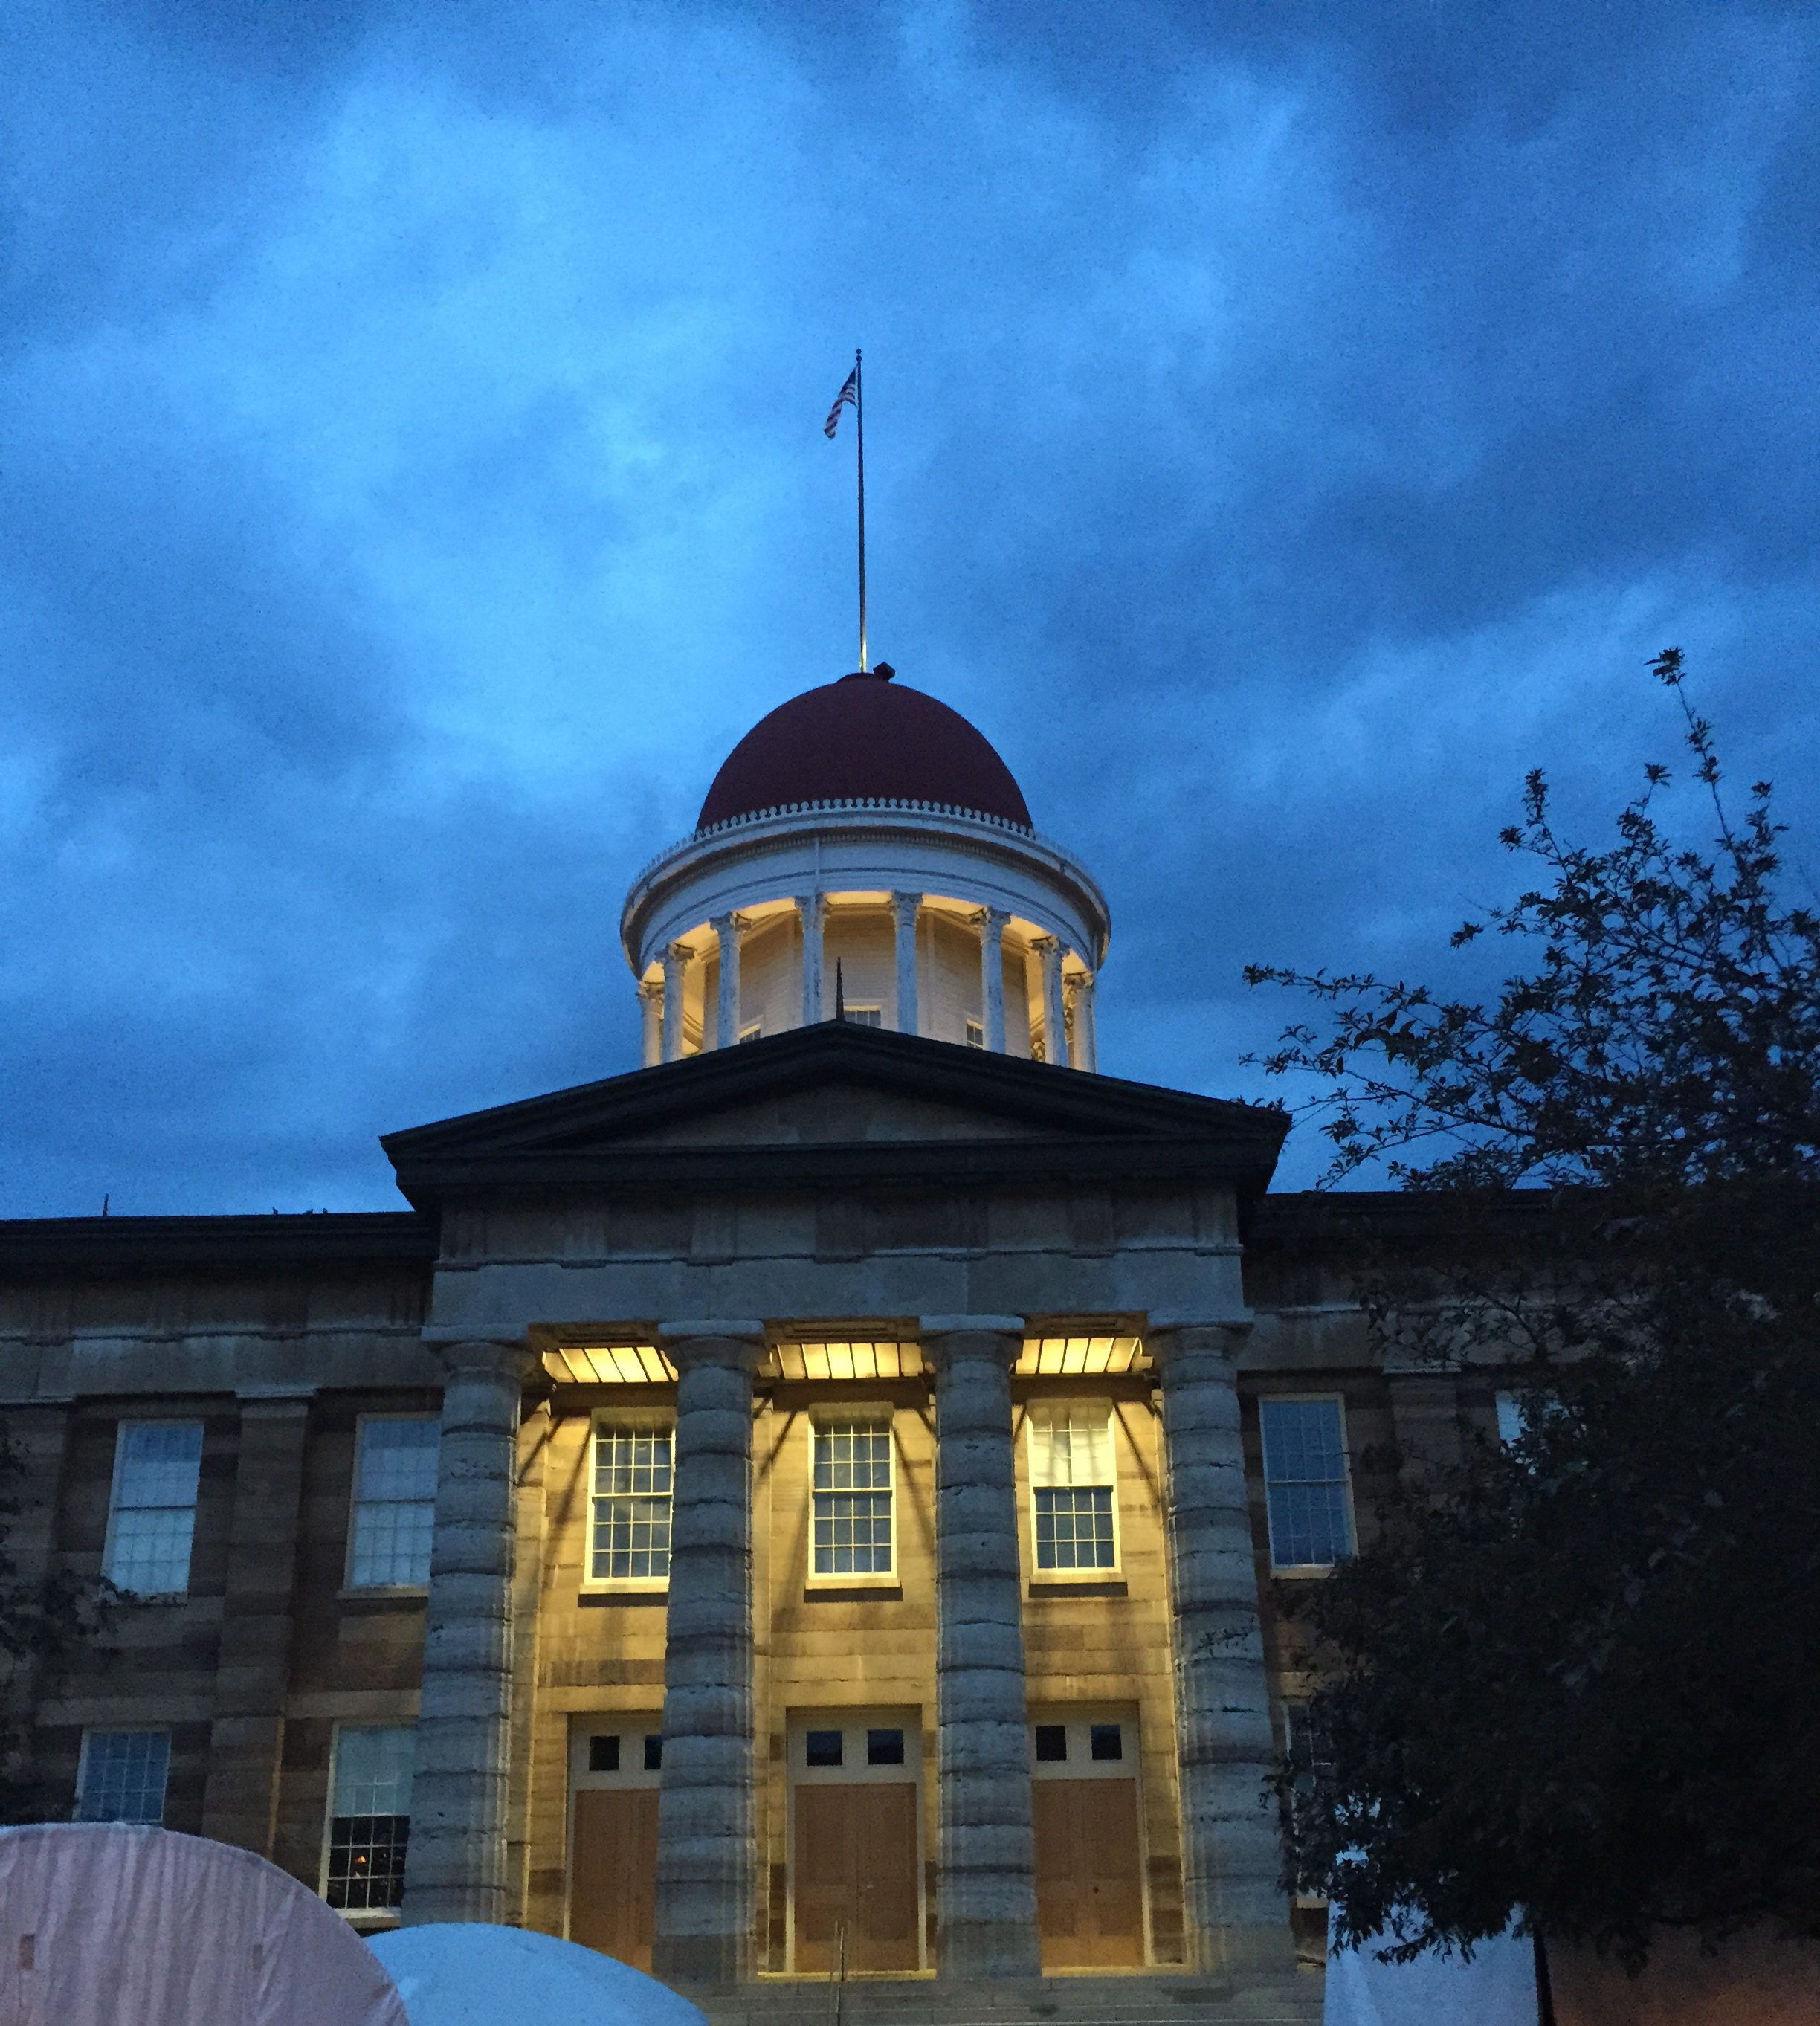 Night time photo of historic capitol building